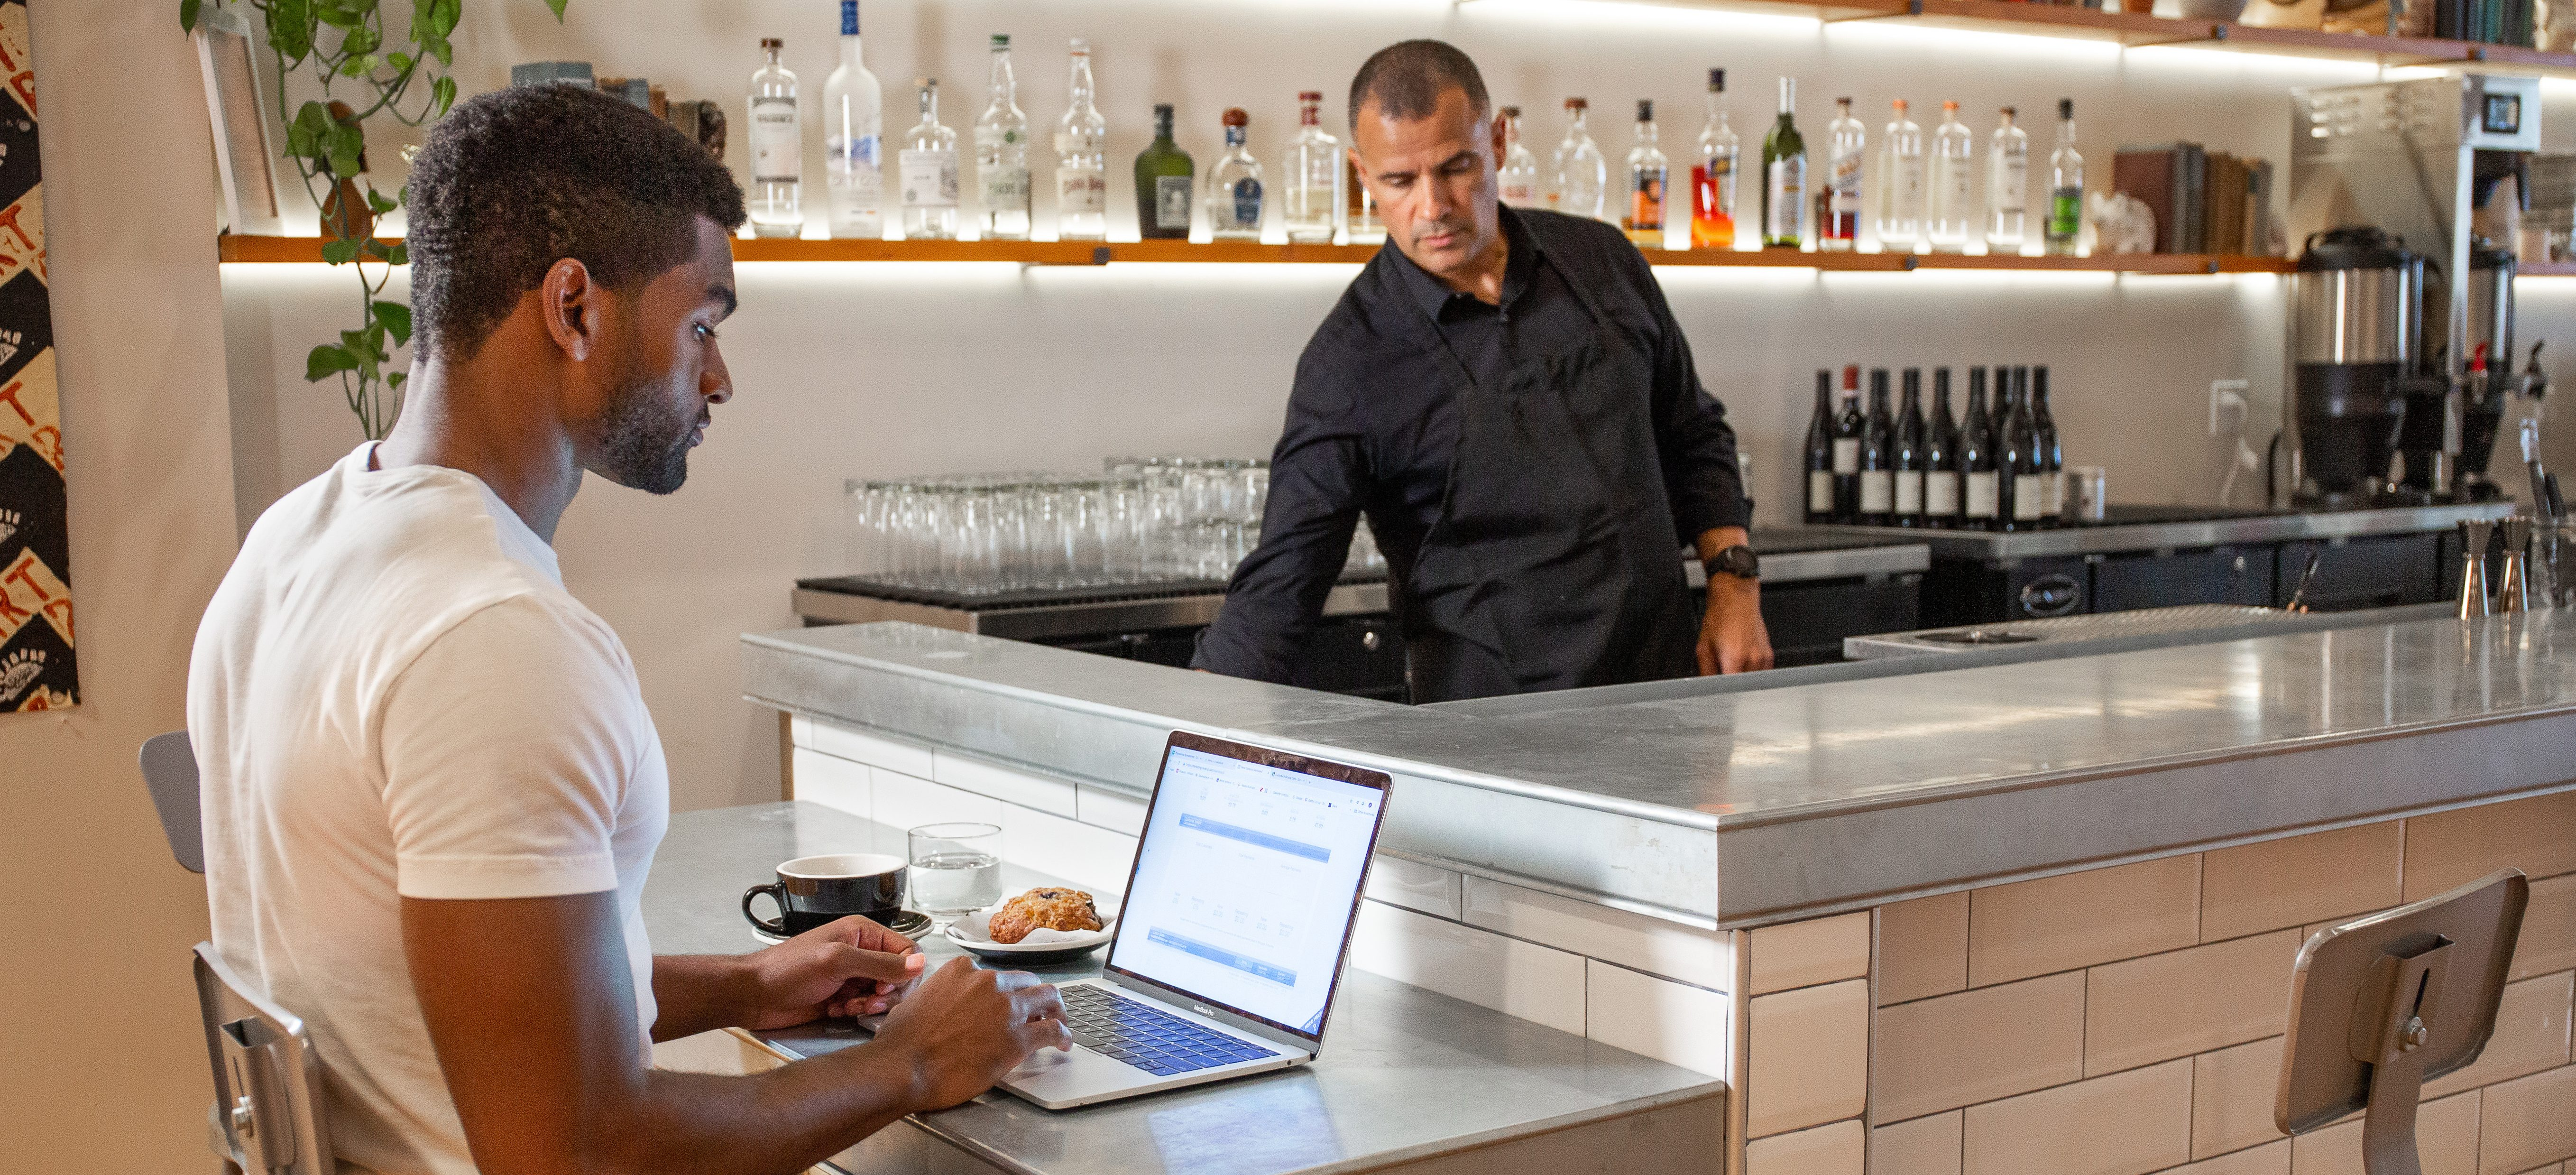 Tips for Business Owners on Managing An Omni-Channel, Multi-Location Operation